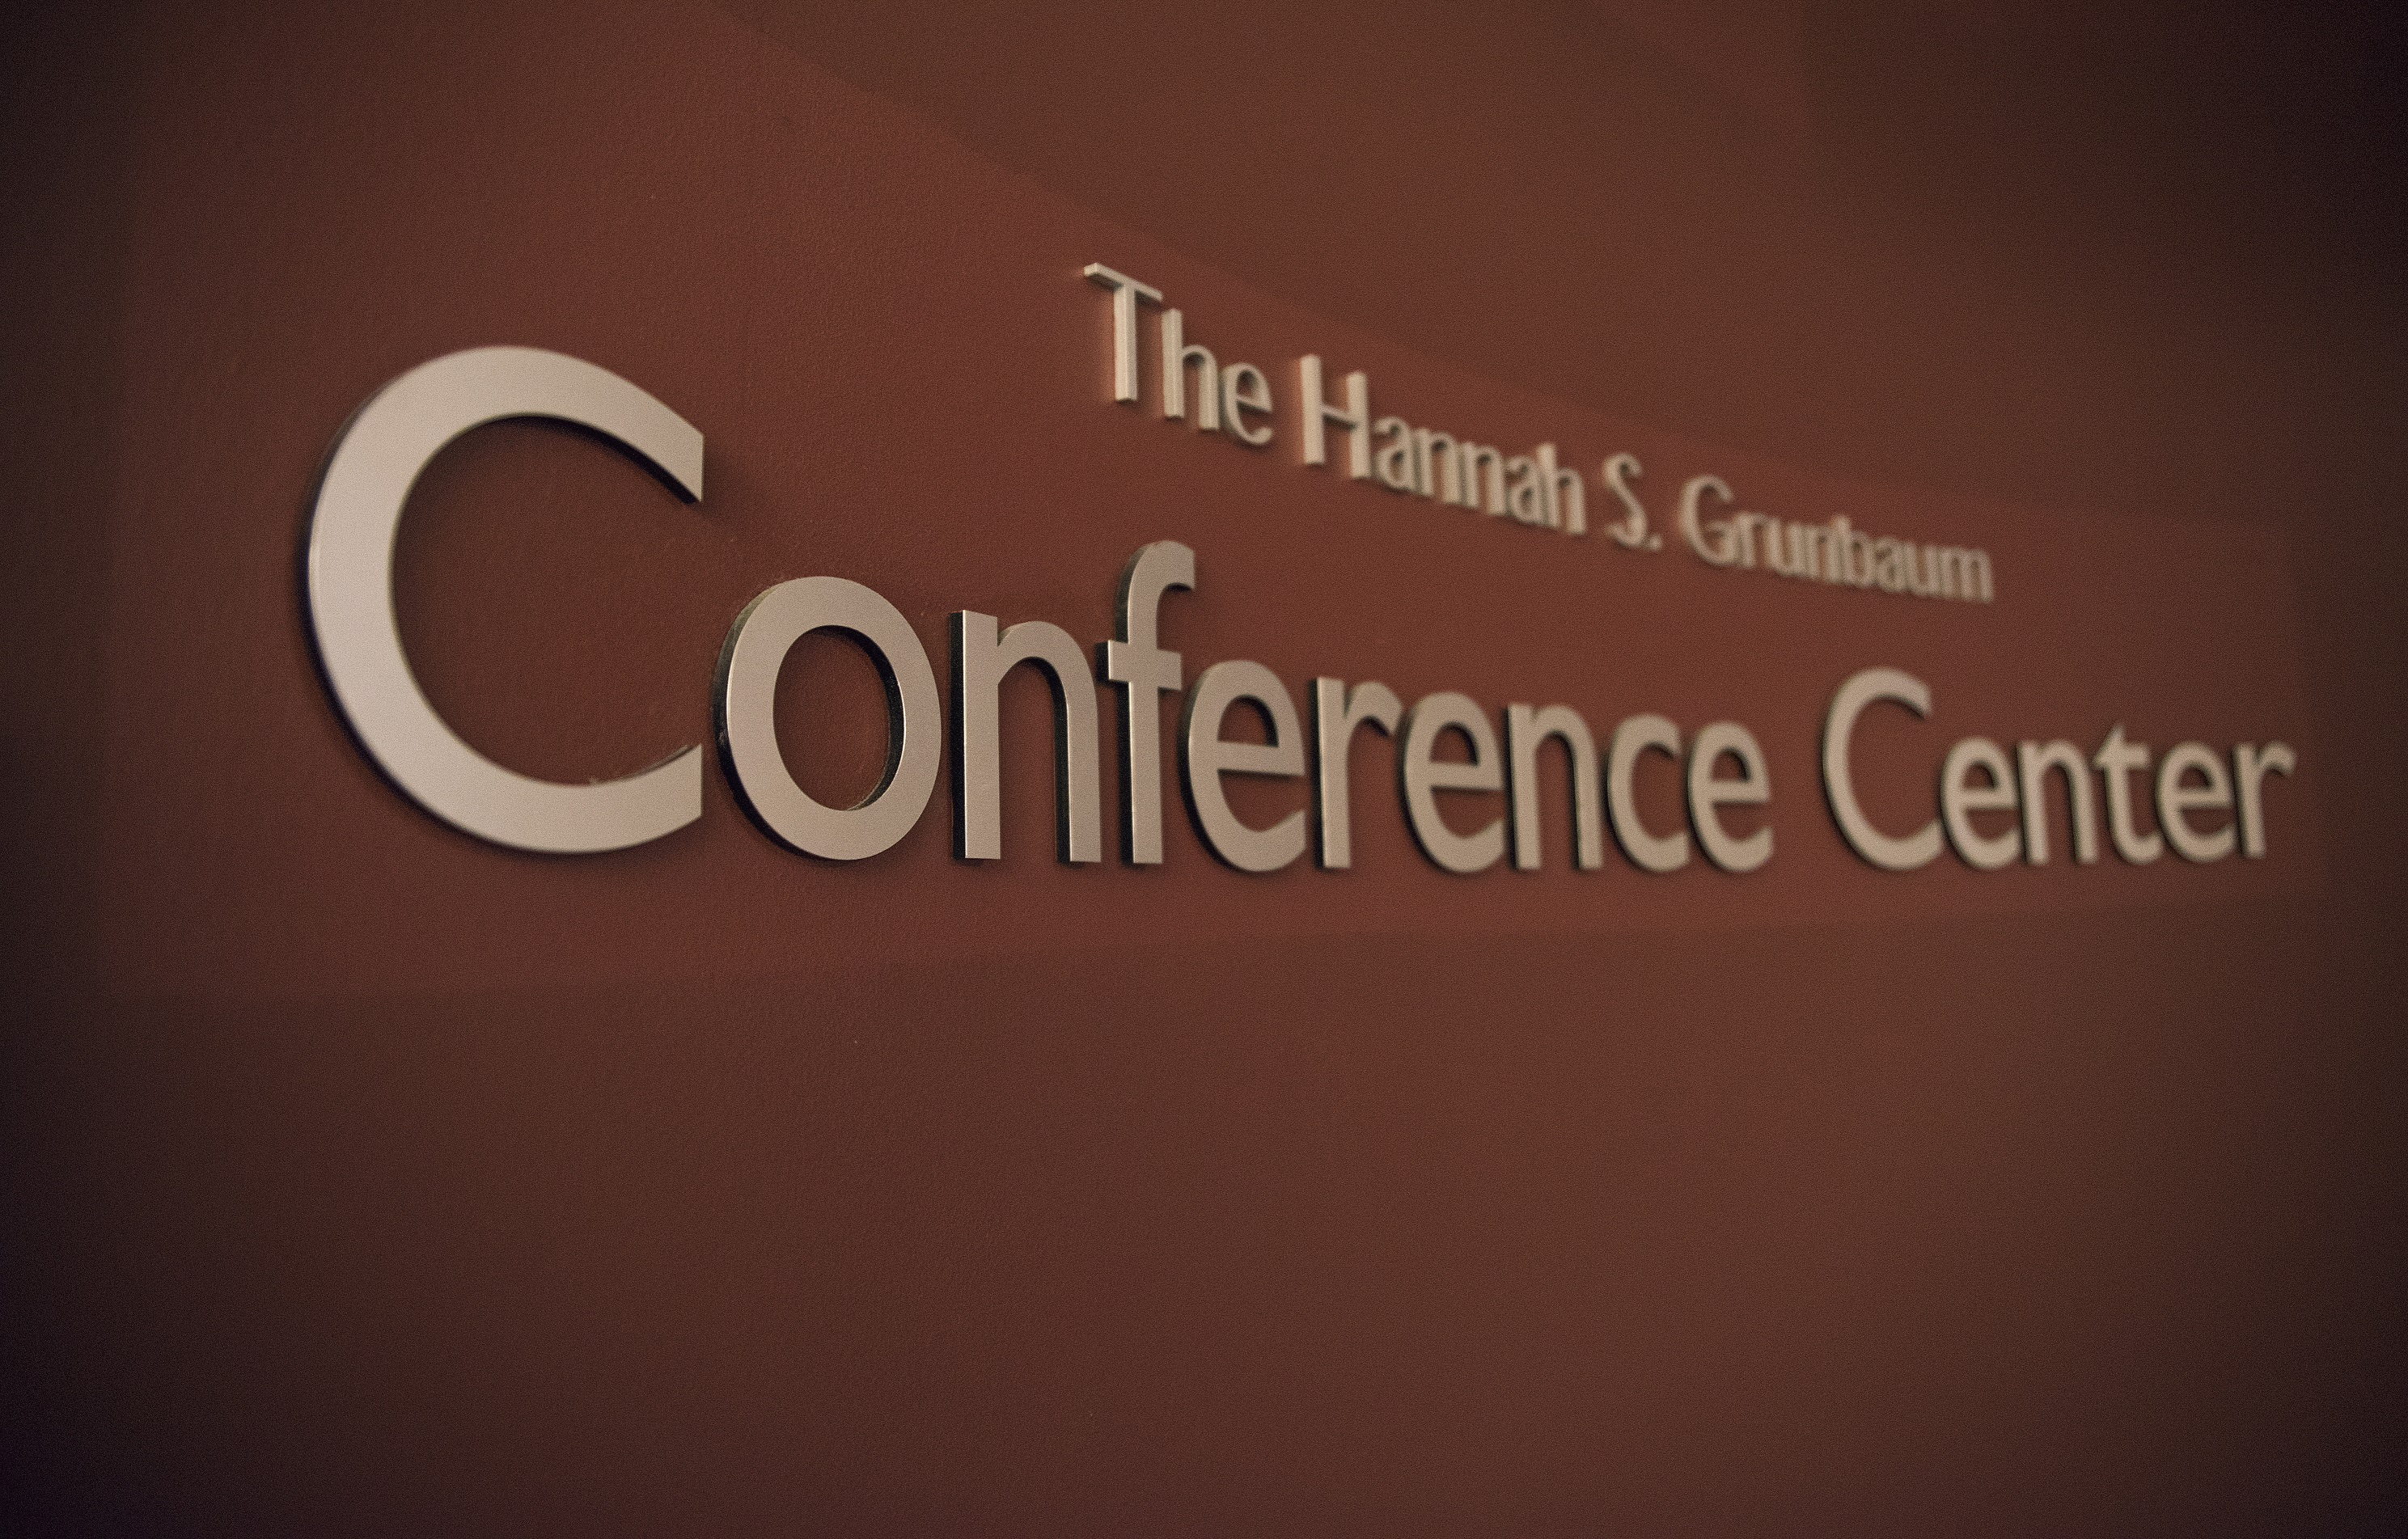 Picture of Hannah S. Grunbaum Conference Center sign.